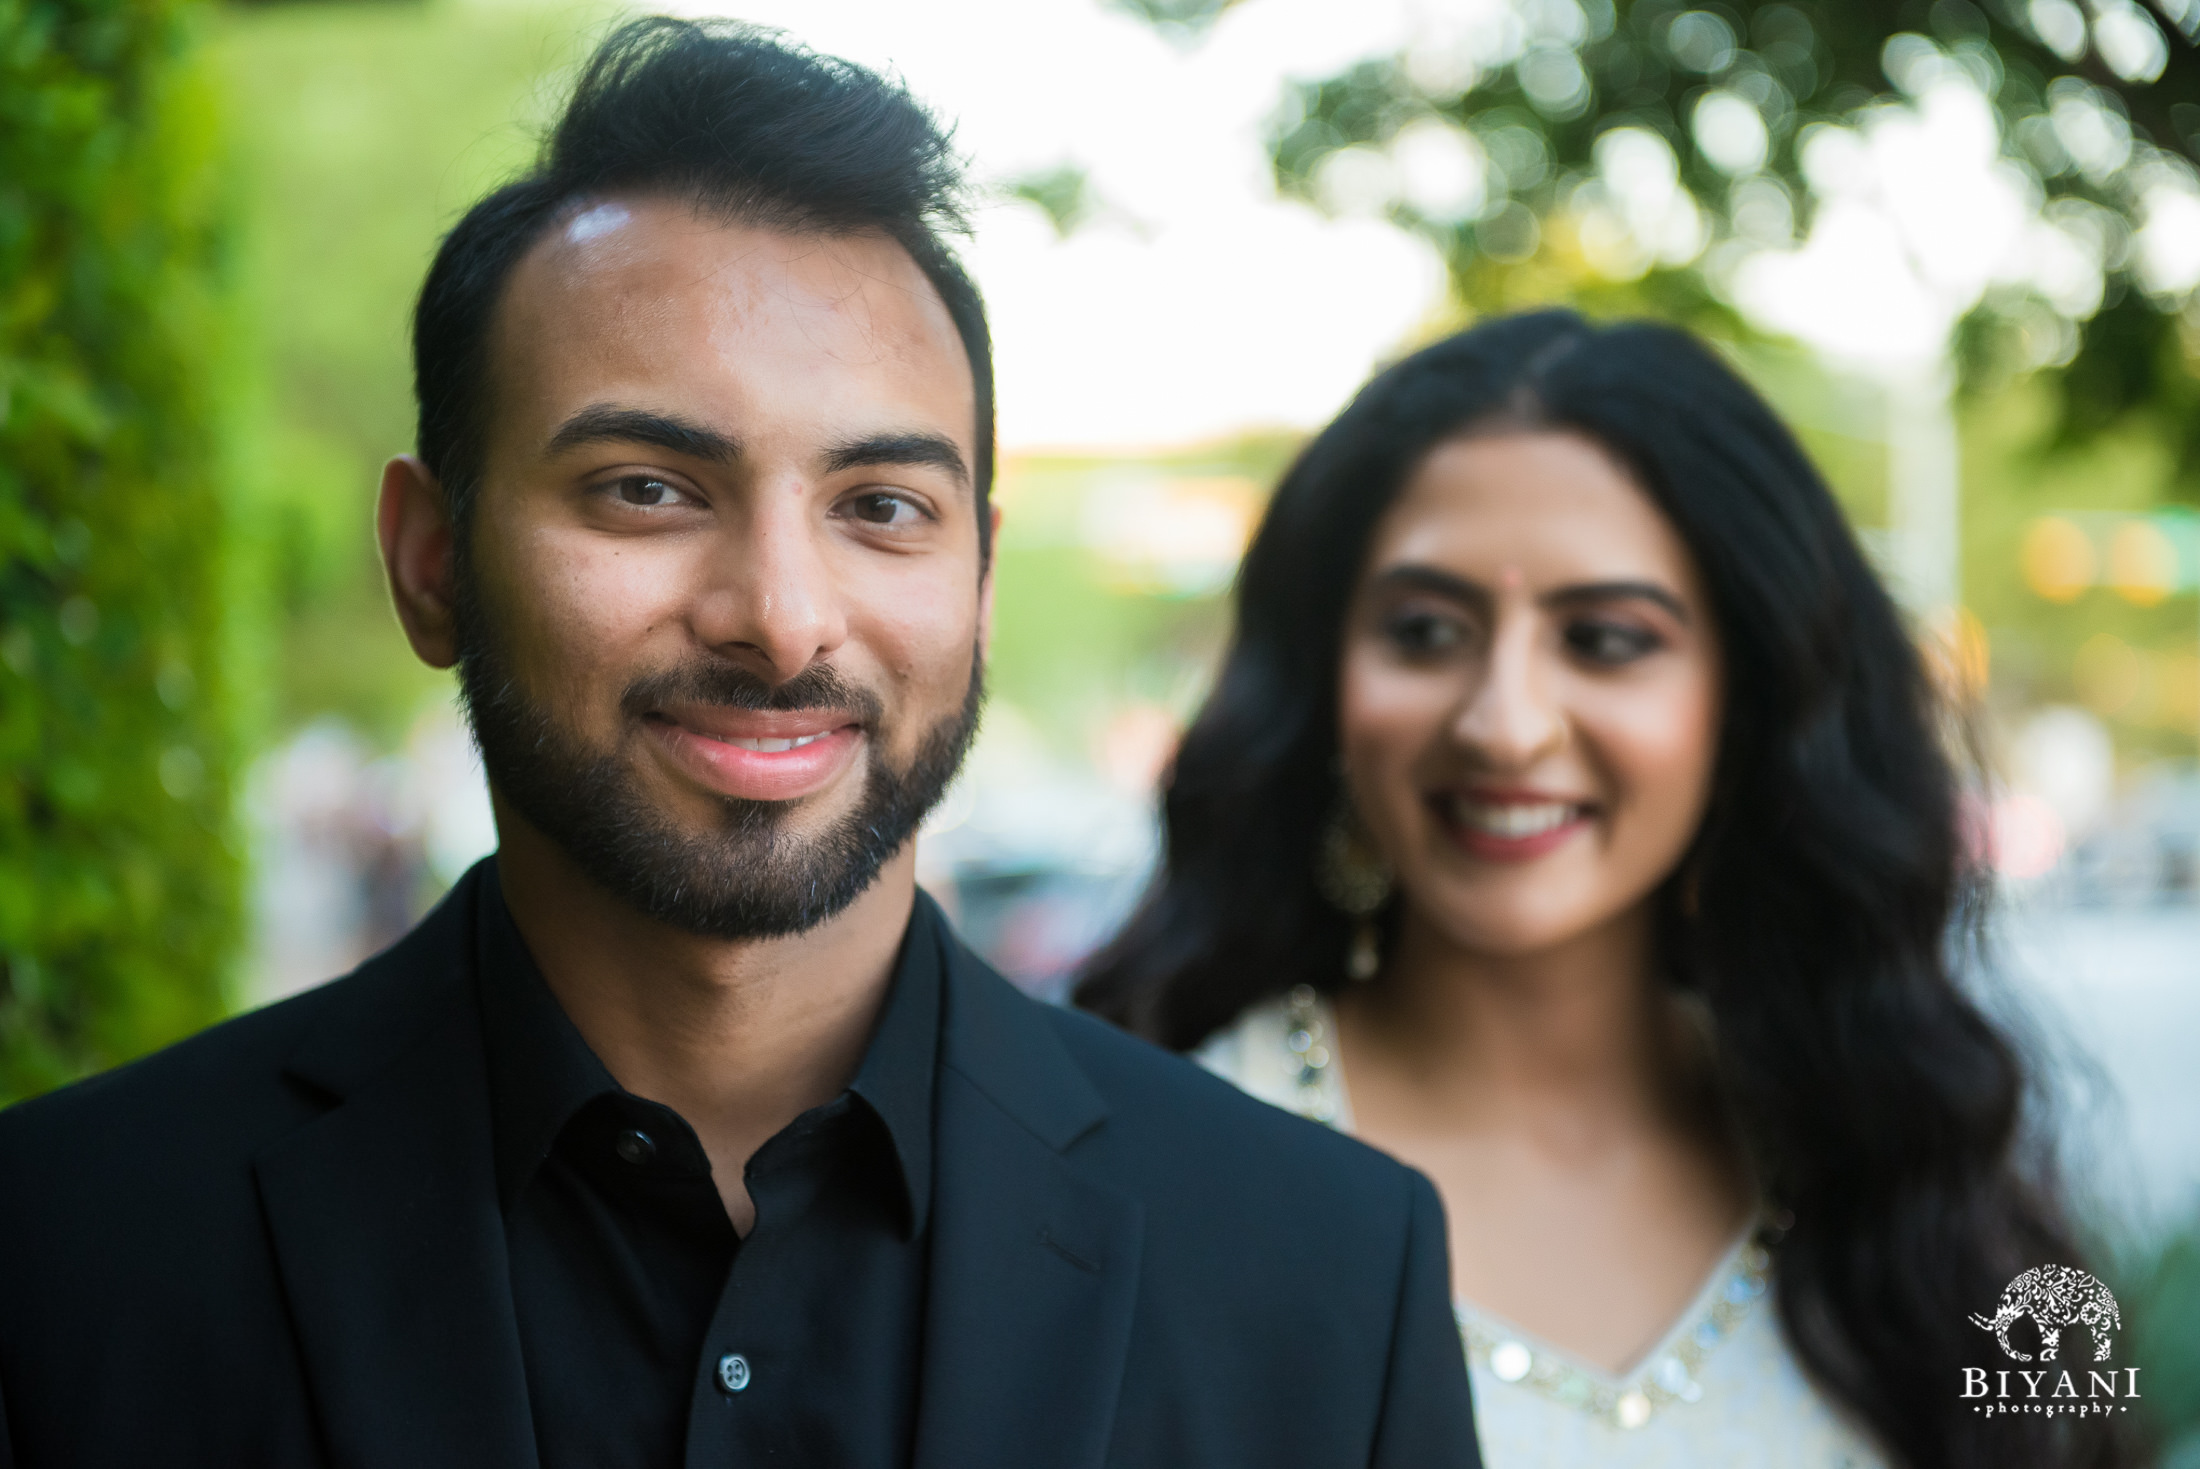 bride and groom posing on the streets of Austin, Texas during Indian Engagement photo shoot